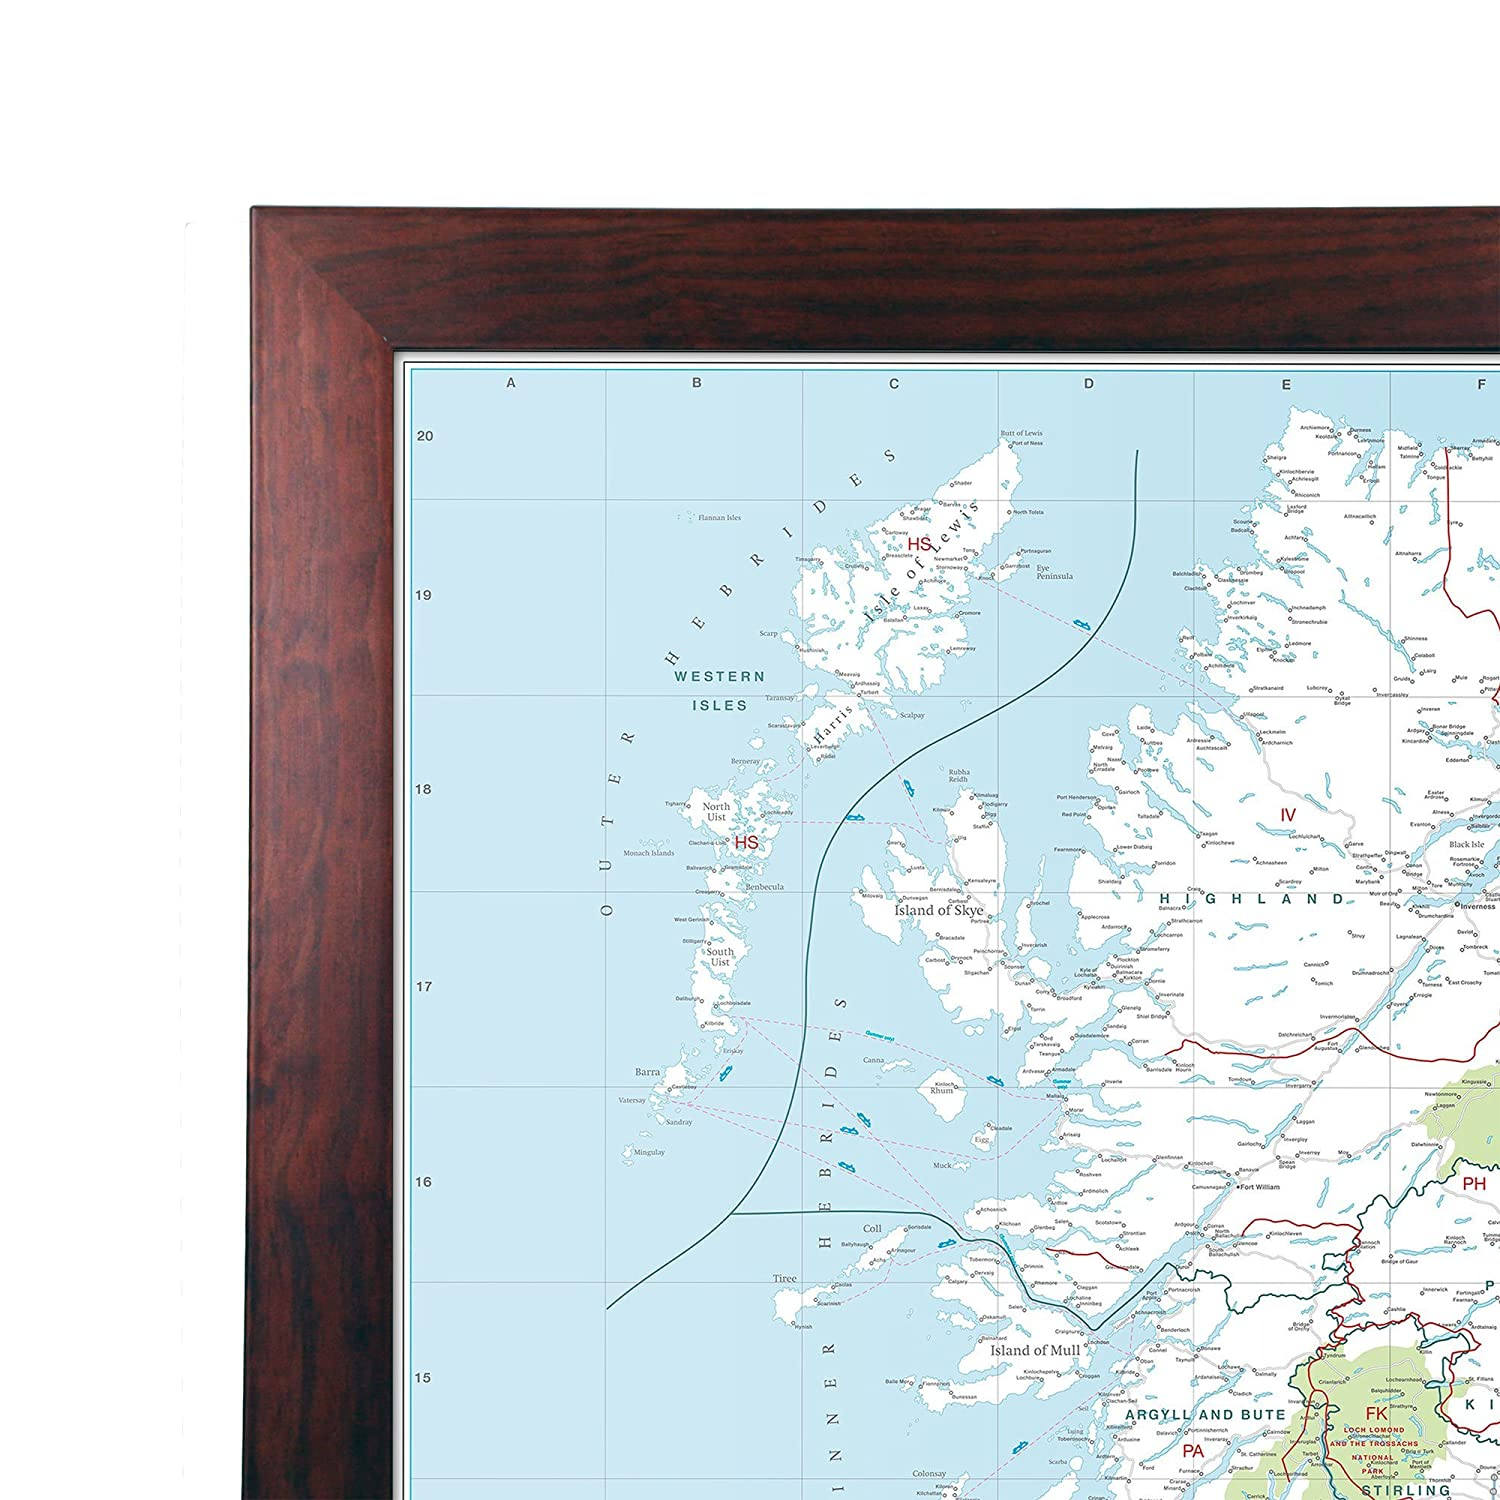 Large Wall Map For Business UK Postcode Area Map Laminated With Dark Wood Frame